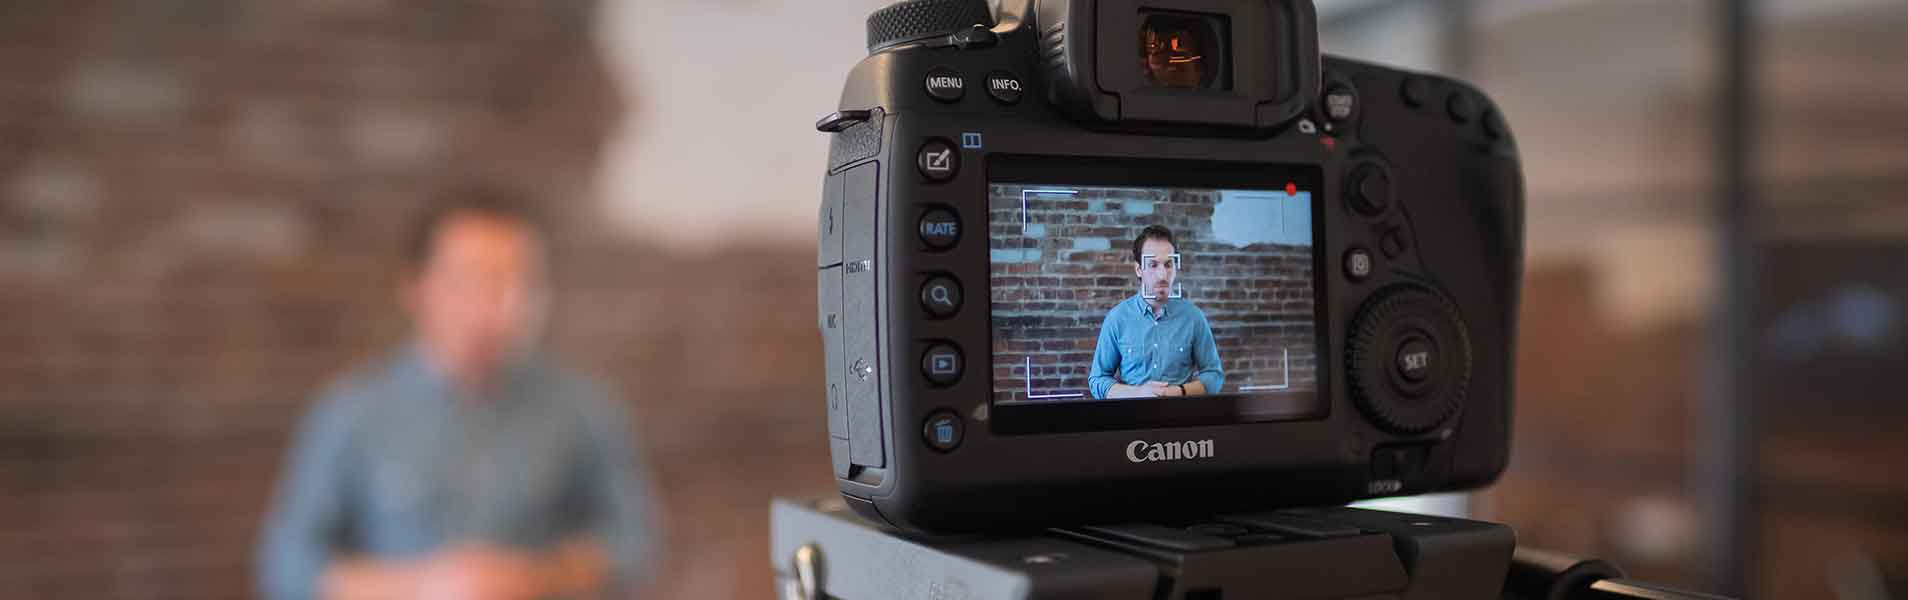 5 steps to creating successful branded video content